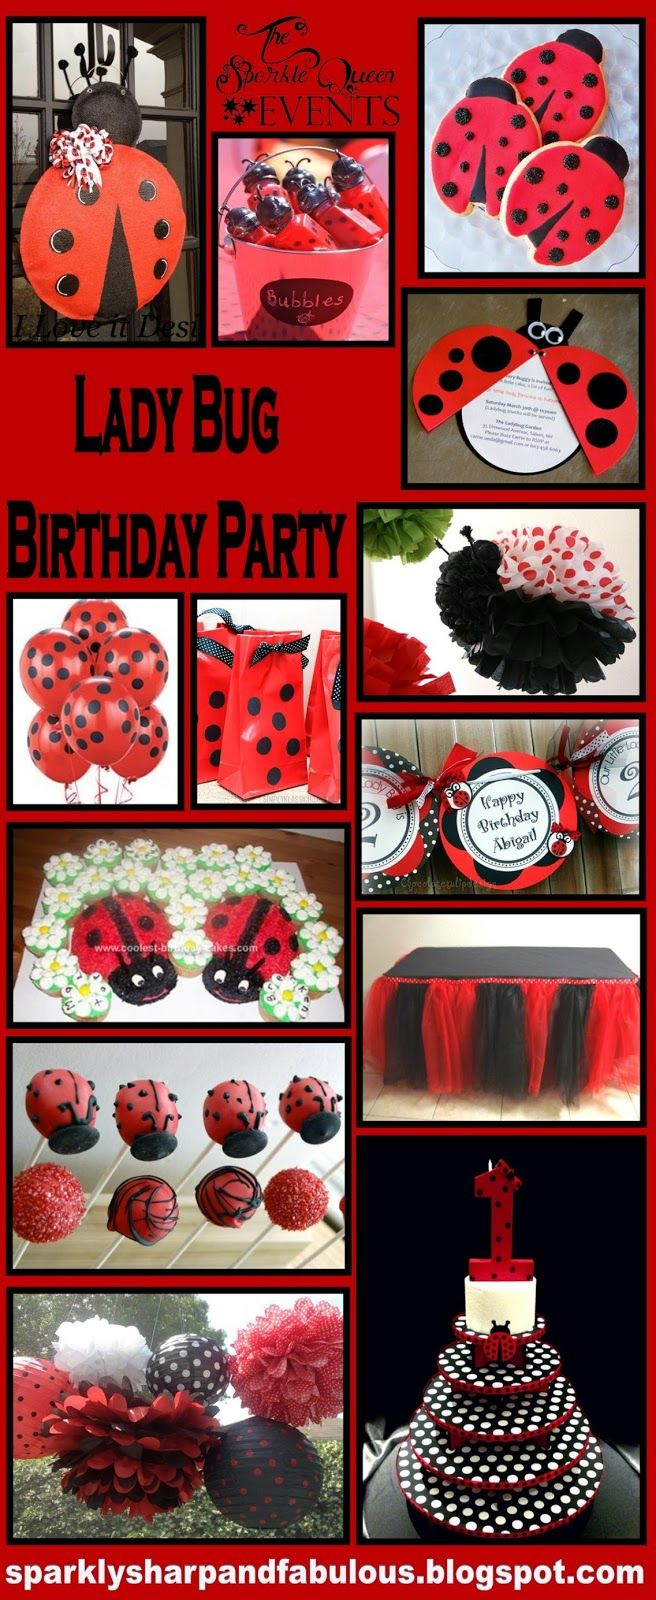 Check out this Blog for Birthday ideas…she does all the footwork for you!  Chocolatetulipdesign got a fe